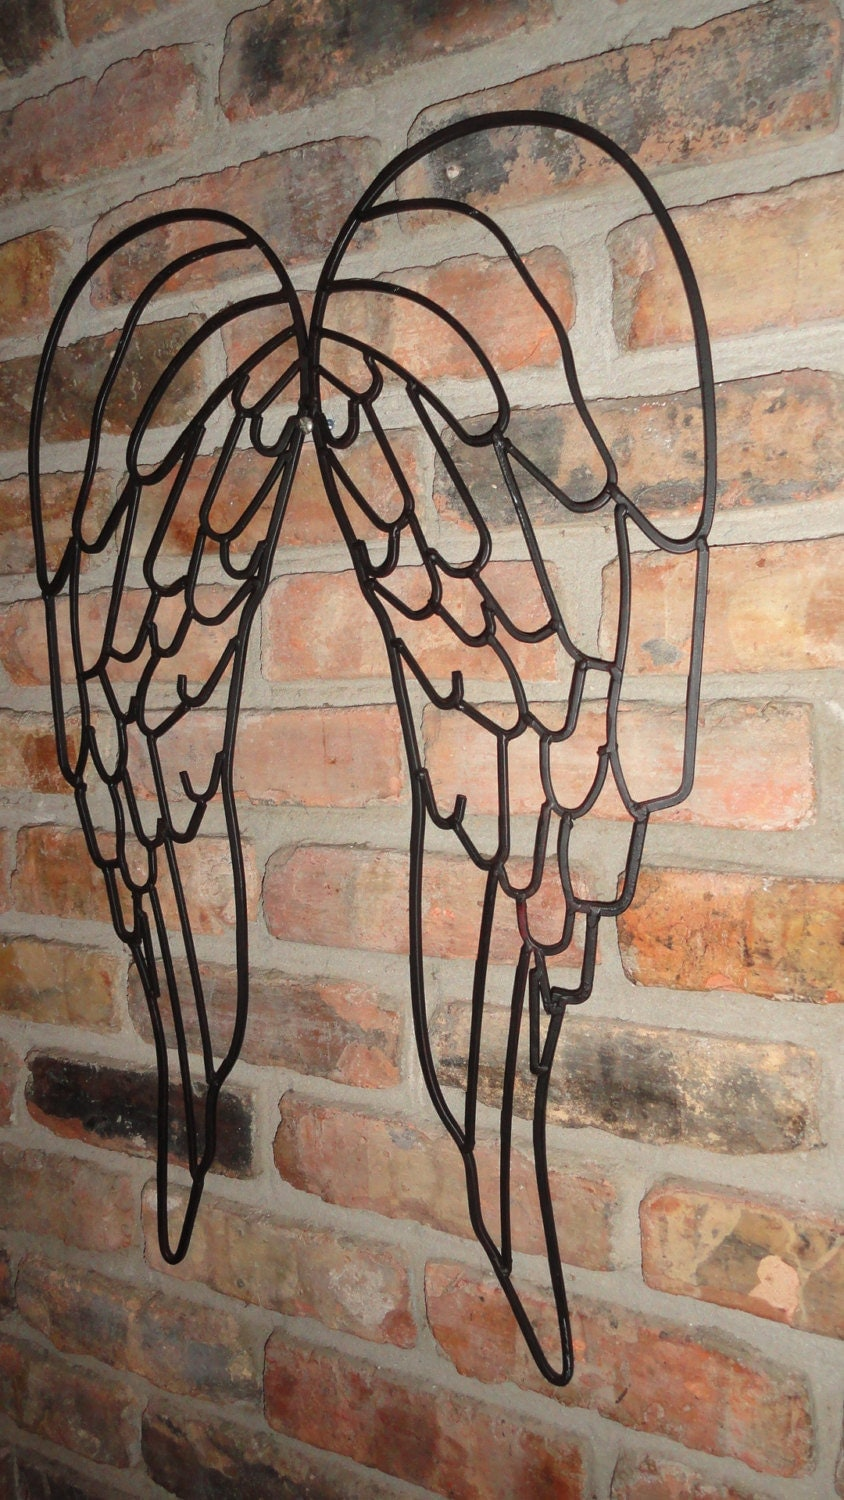 wrought iron angel wings wall decor garden decor old world. Black Bedroom Furniture Sets. Home Design Ideas